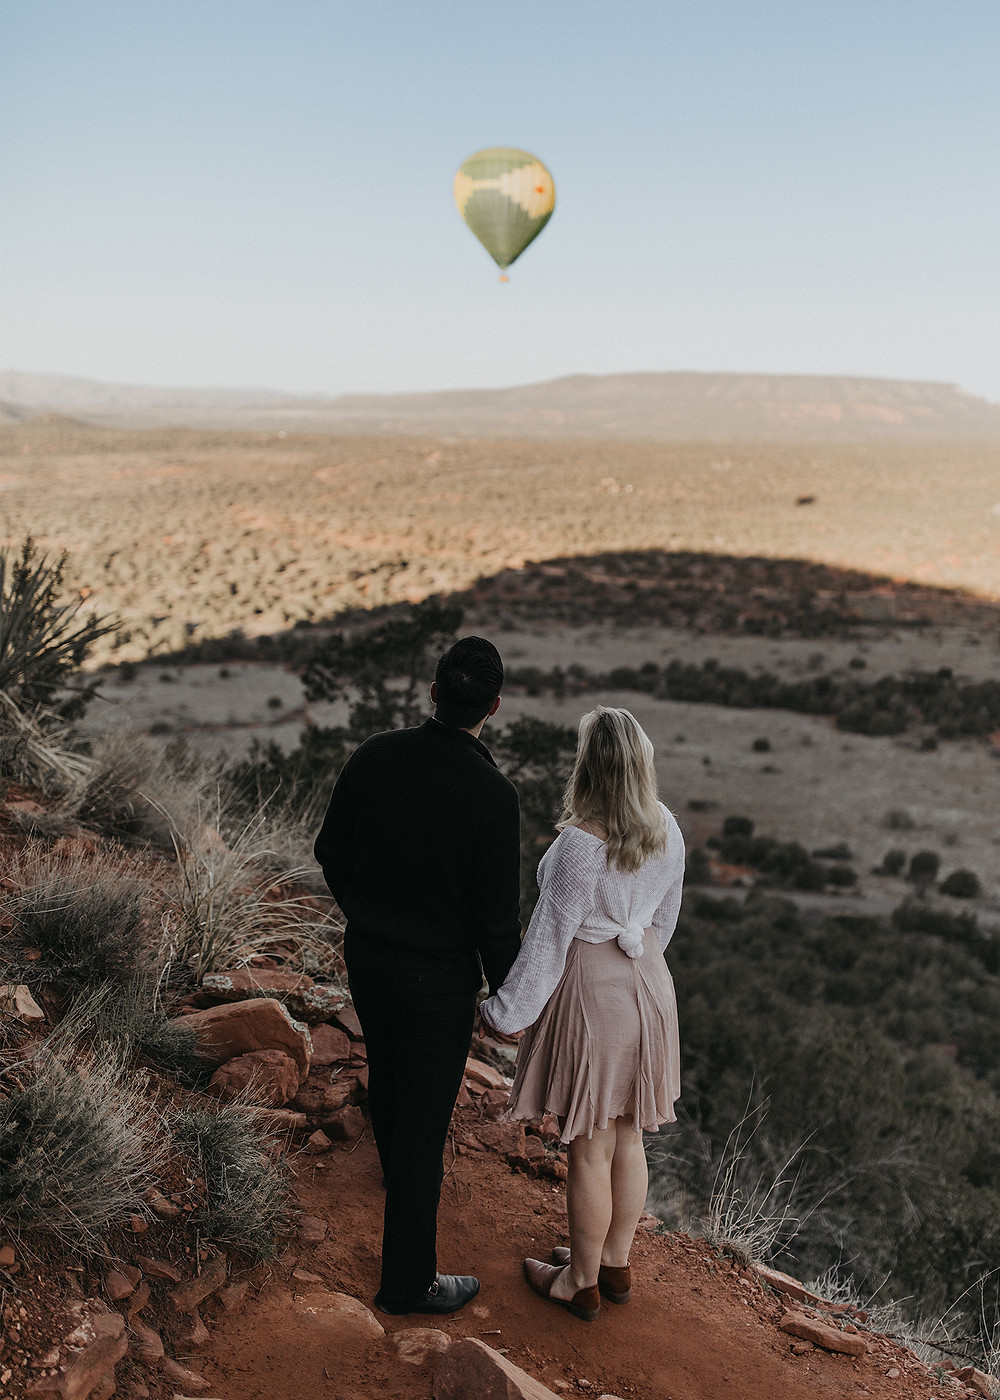 Couple on mountain looking at hot air balloon